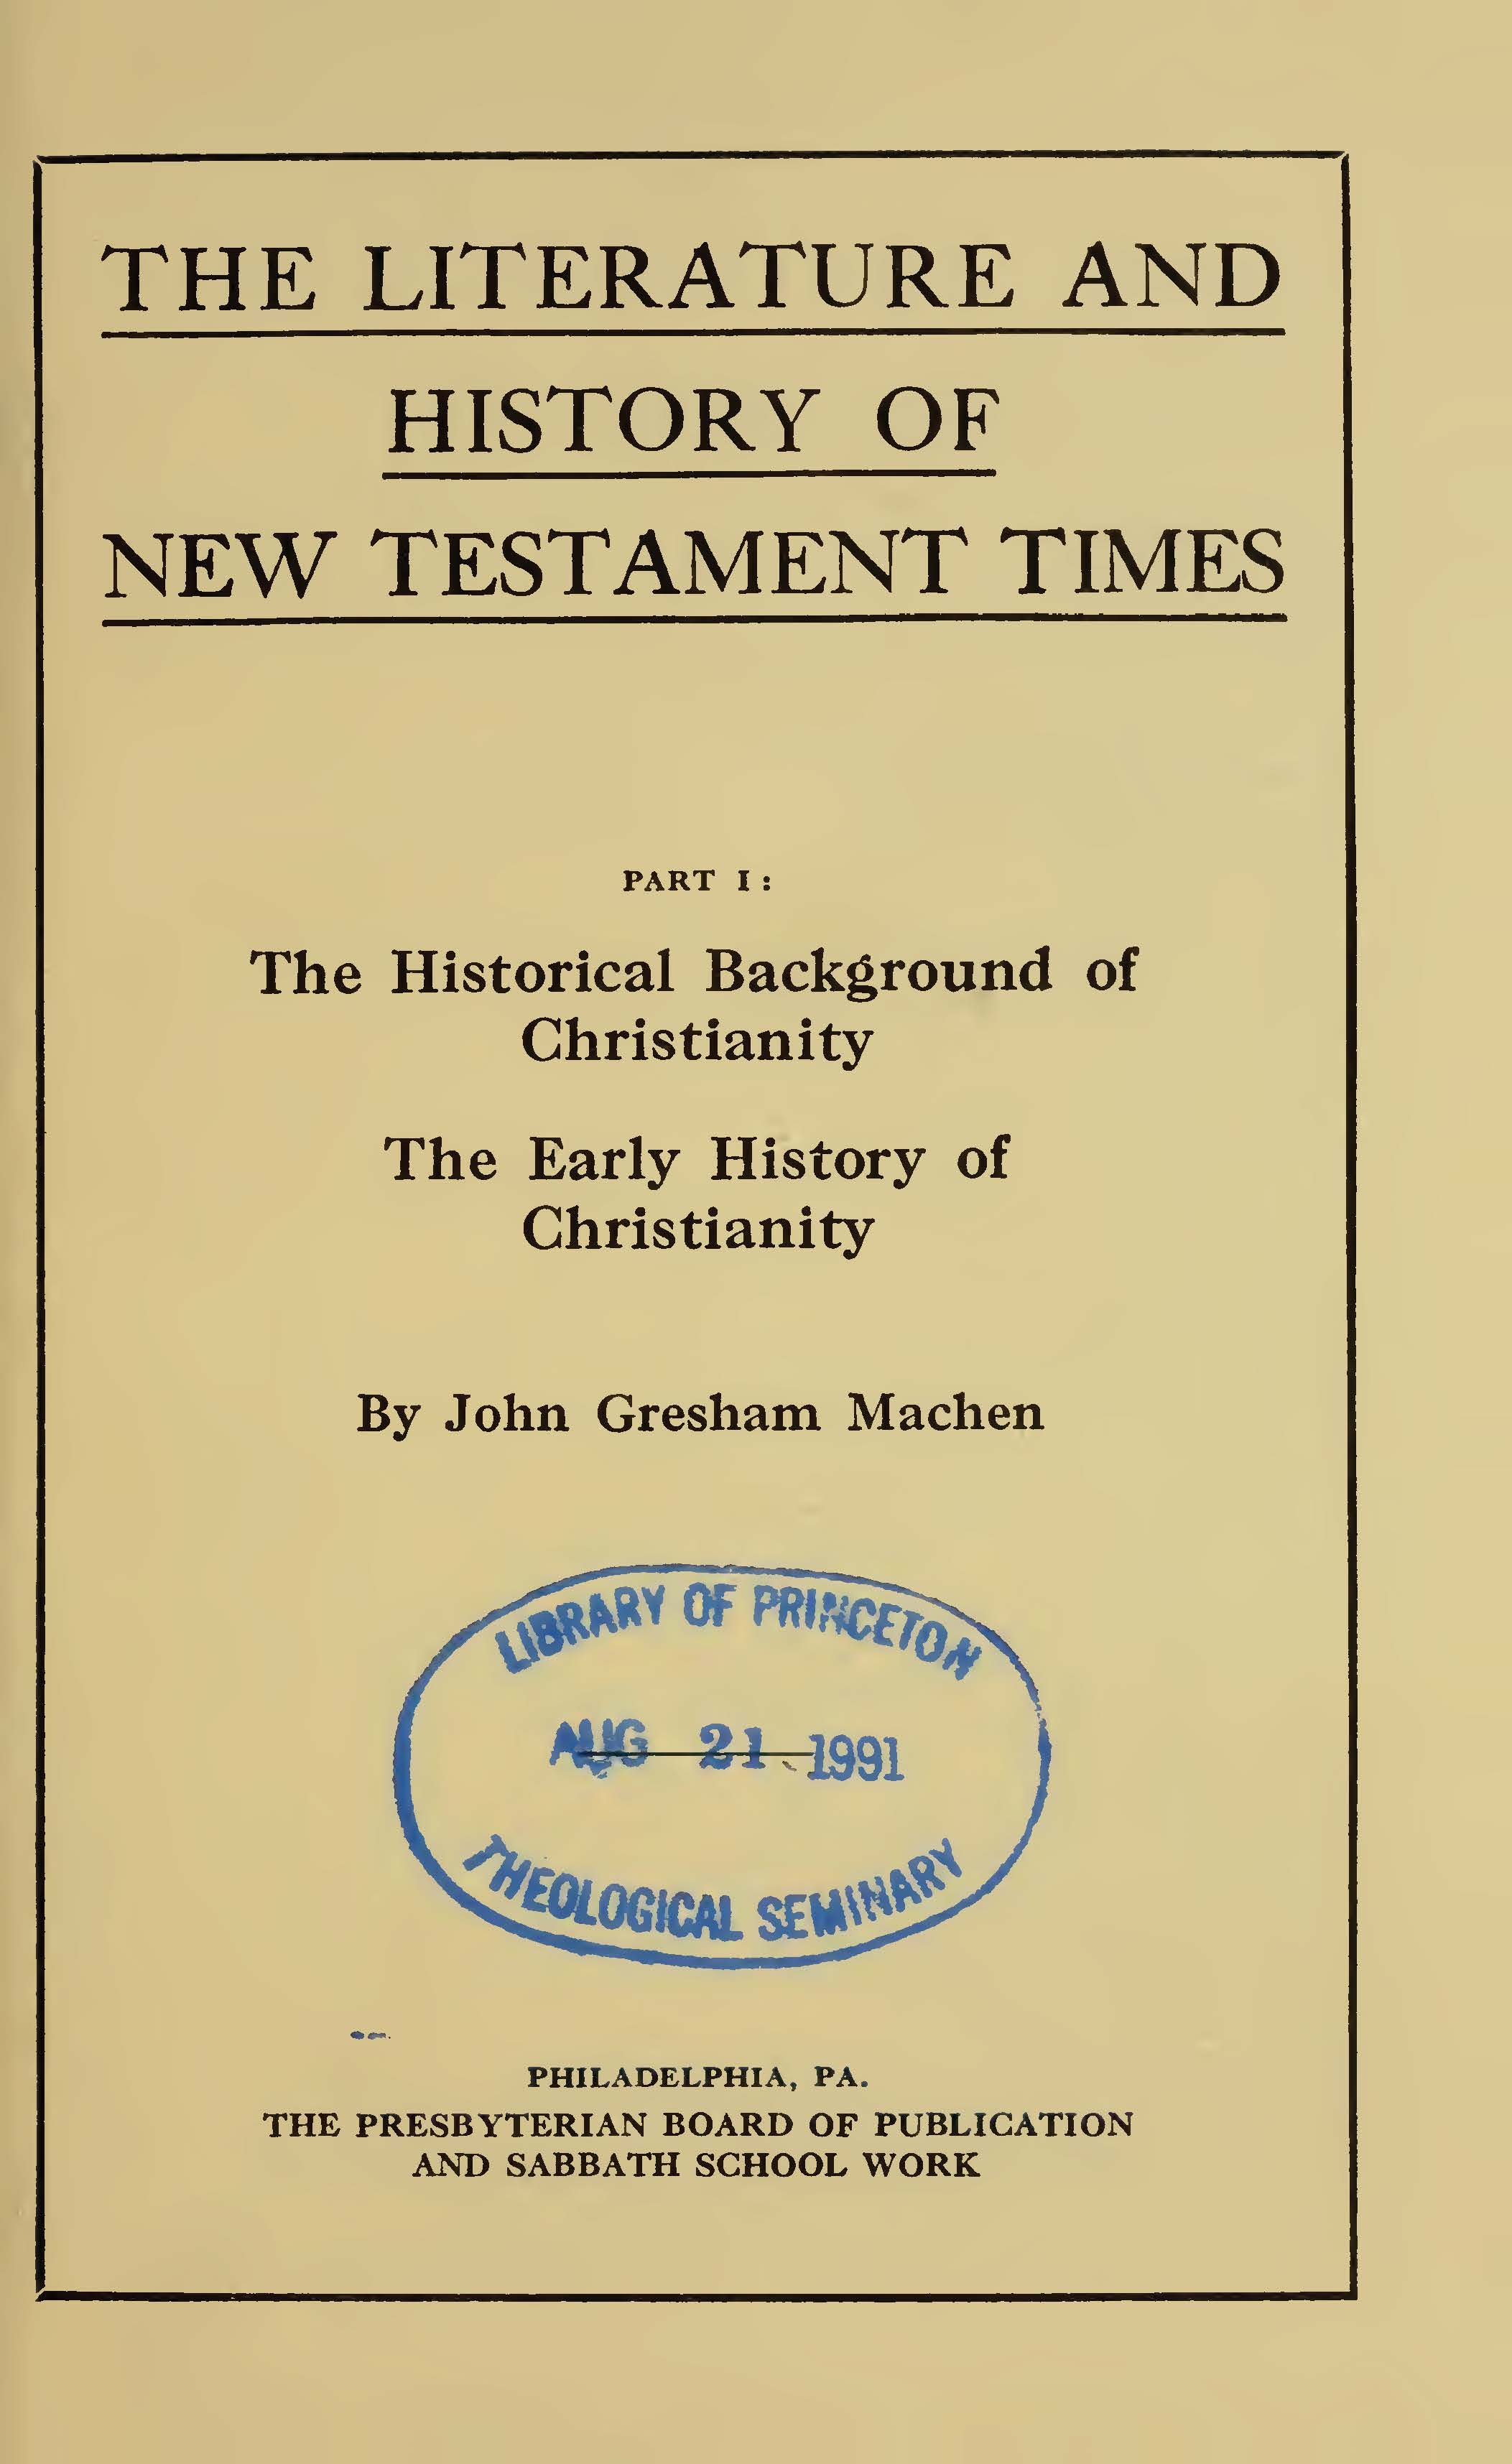 Machen, John Gresham, The Literature and History of New Testament Times Title Page.jpg